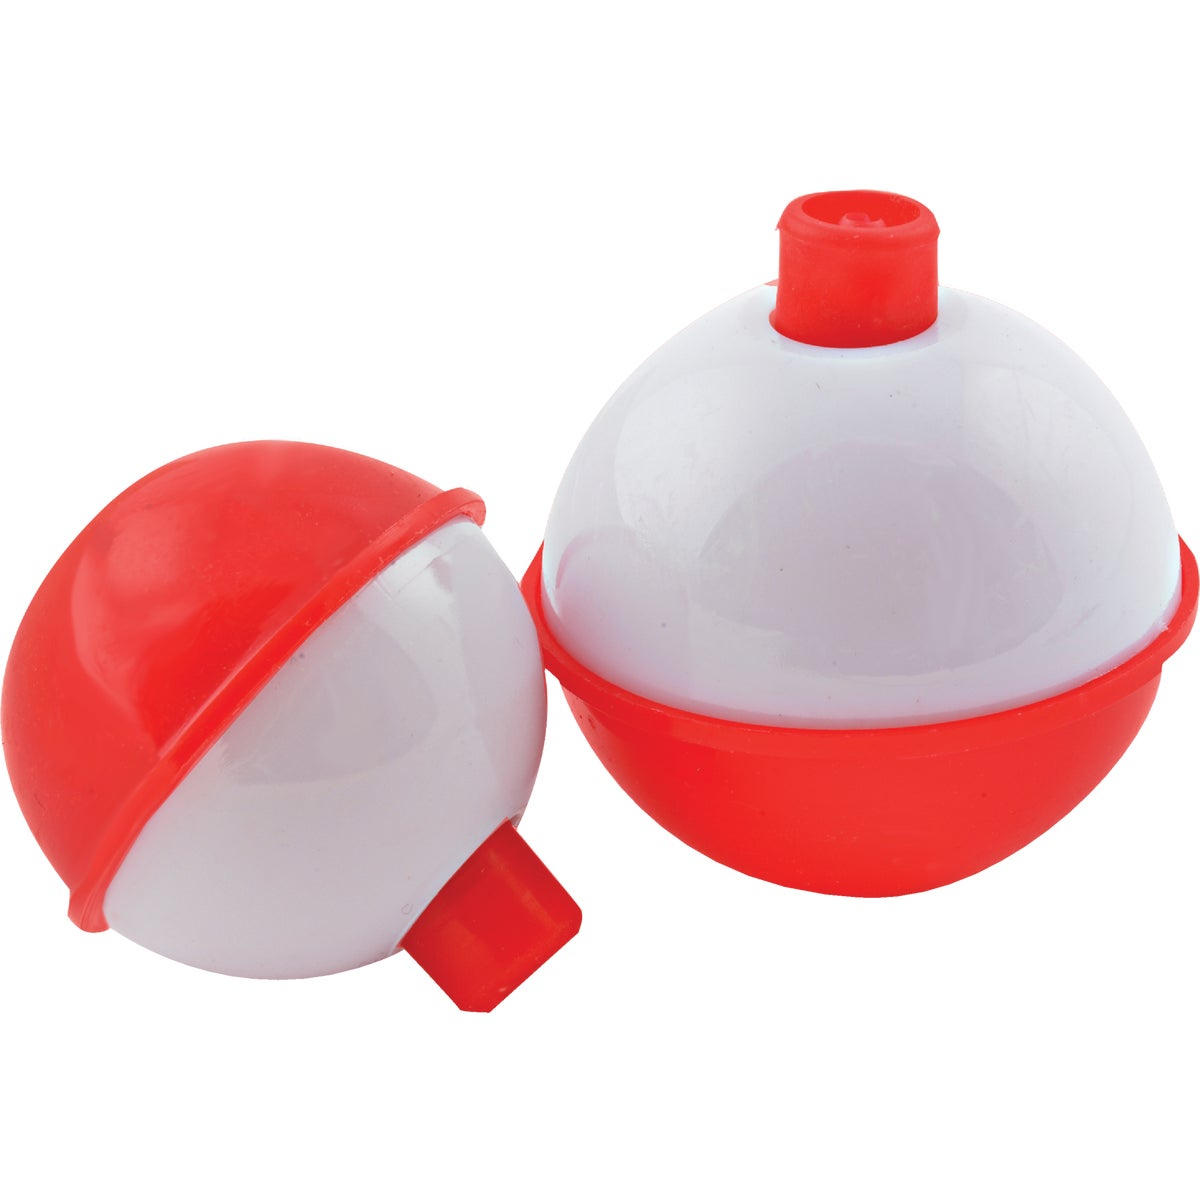 ASTD PUSH-BUTTON FLOATS - FRW-10 by South Bend Sptg Good